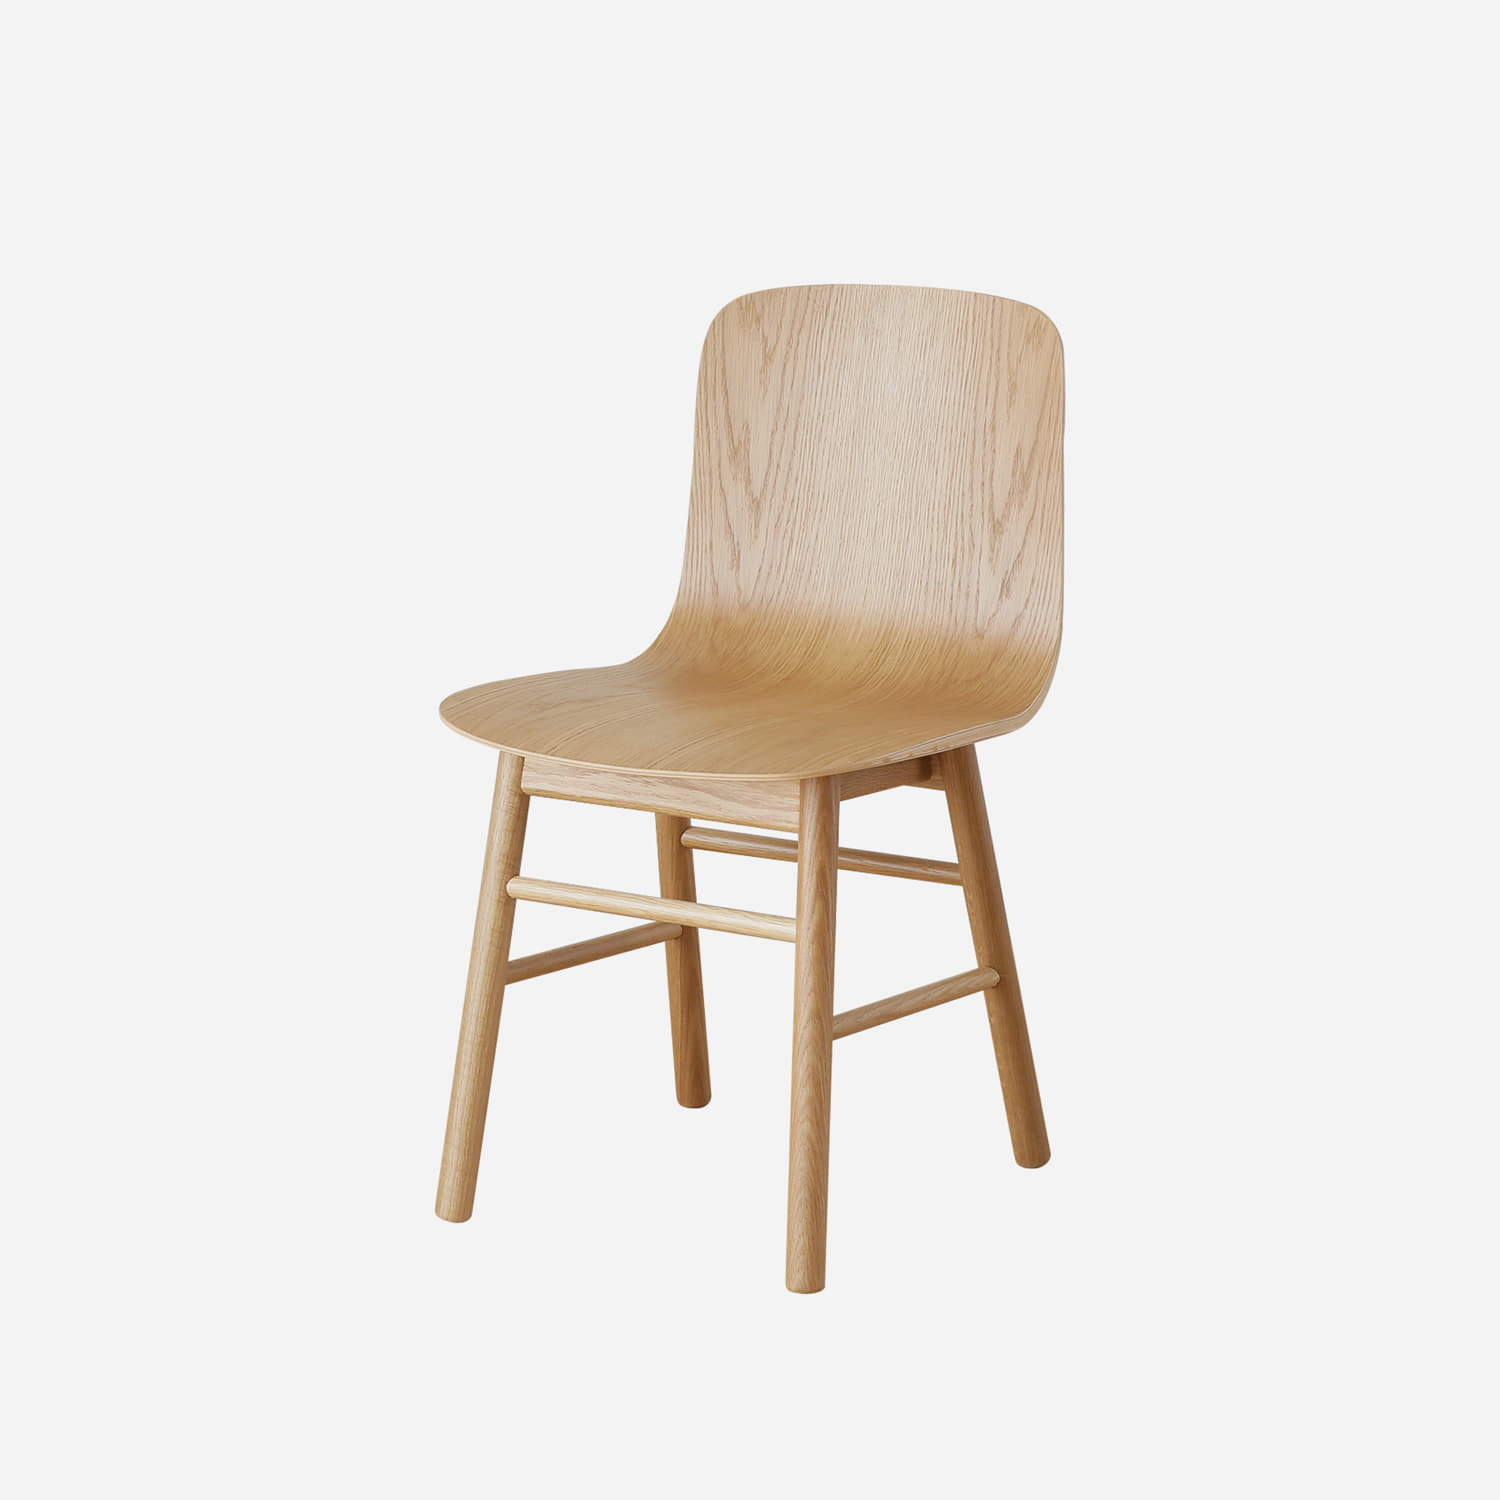 Oblique Stick Leg P1 Chair (manufactured by China)